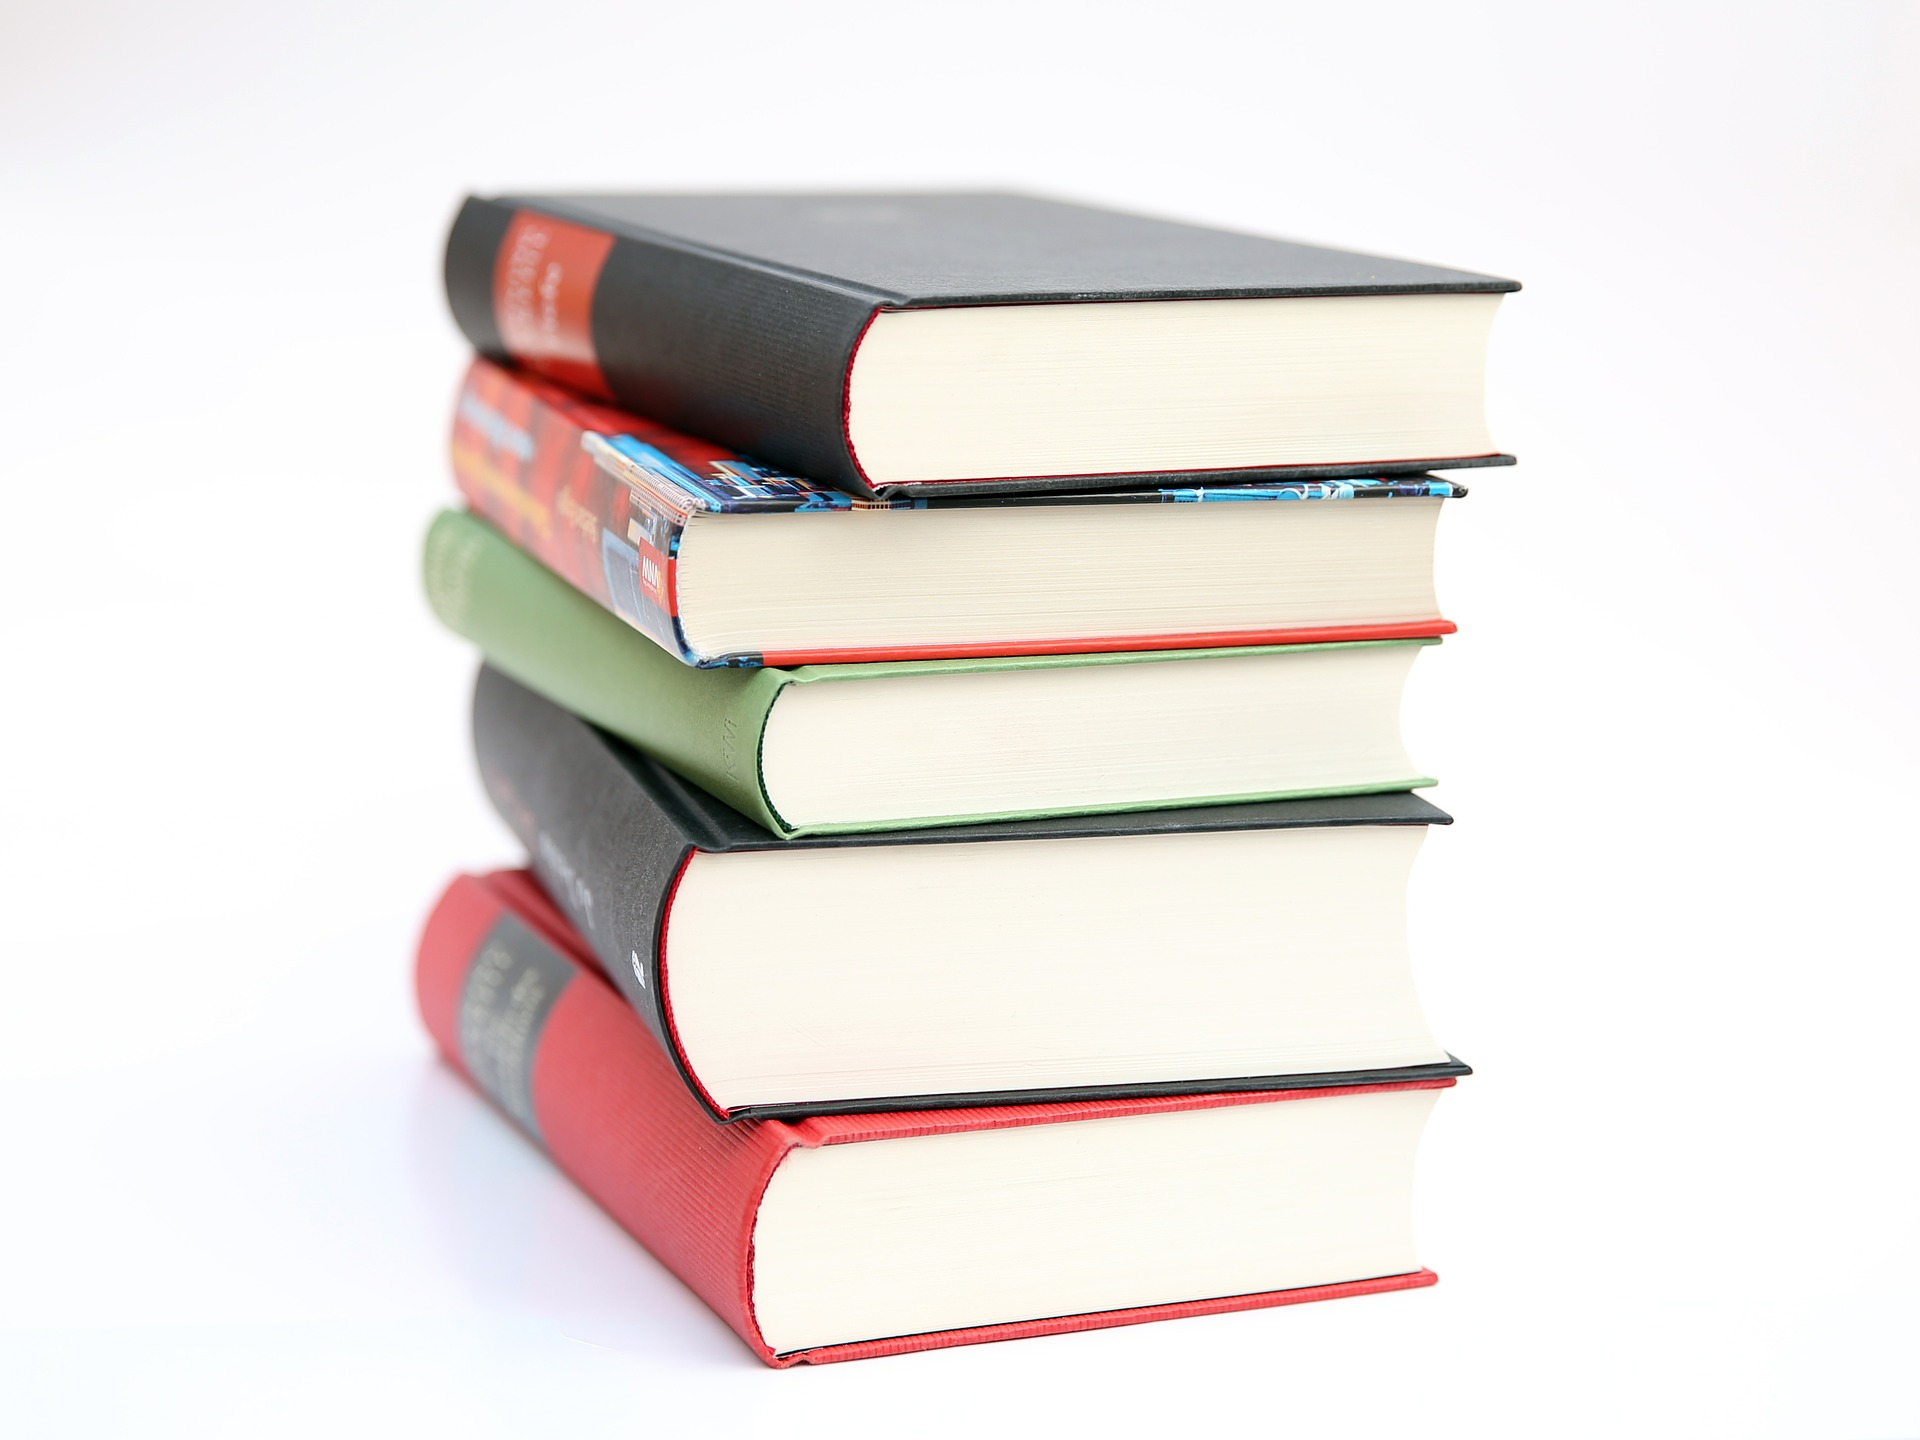 Textbooks - To buy or not to buy?